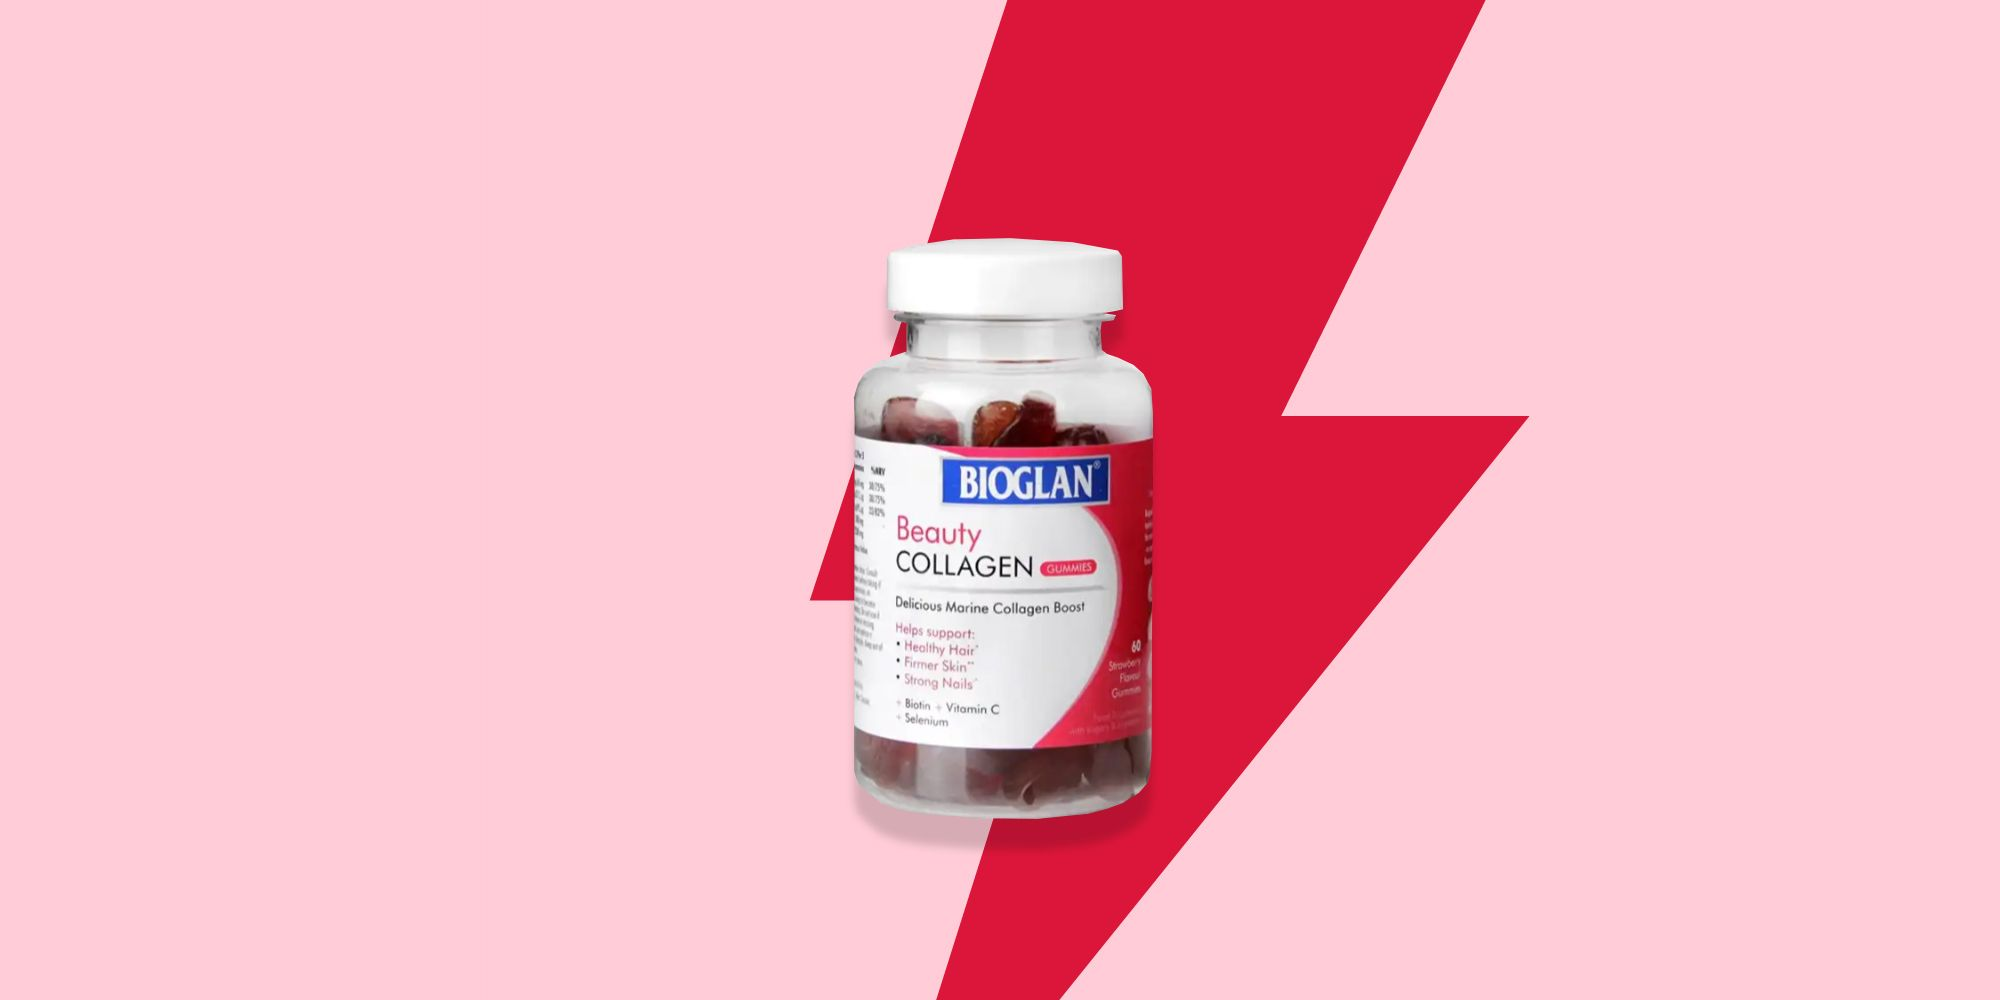 Best Collagen Supplements: What Are the Benefits and Which Ones Should You Buy?